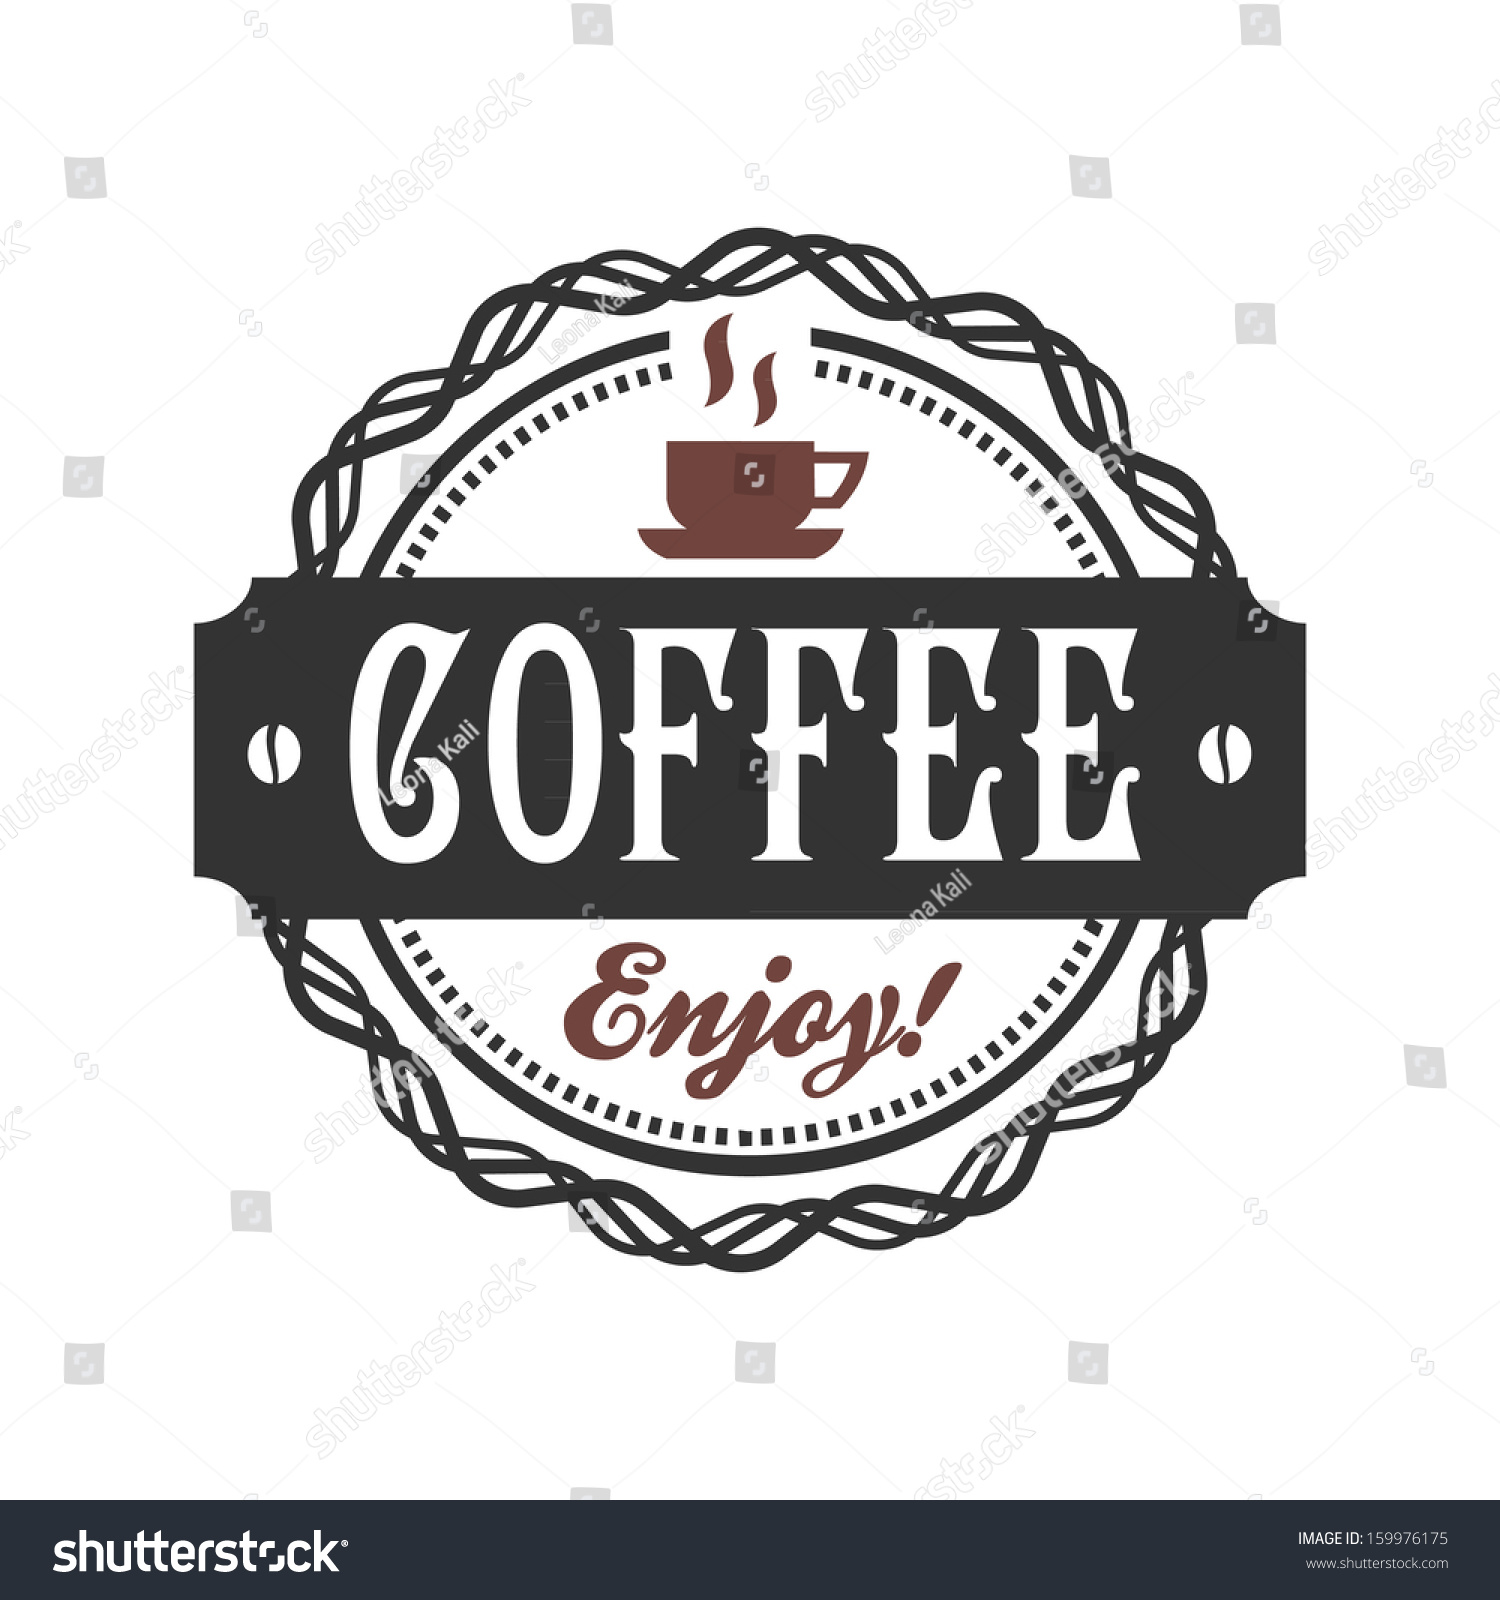 Vector coffee shop labels with calligraphy 159976175 Calligraphy store